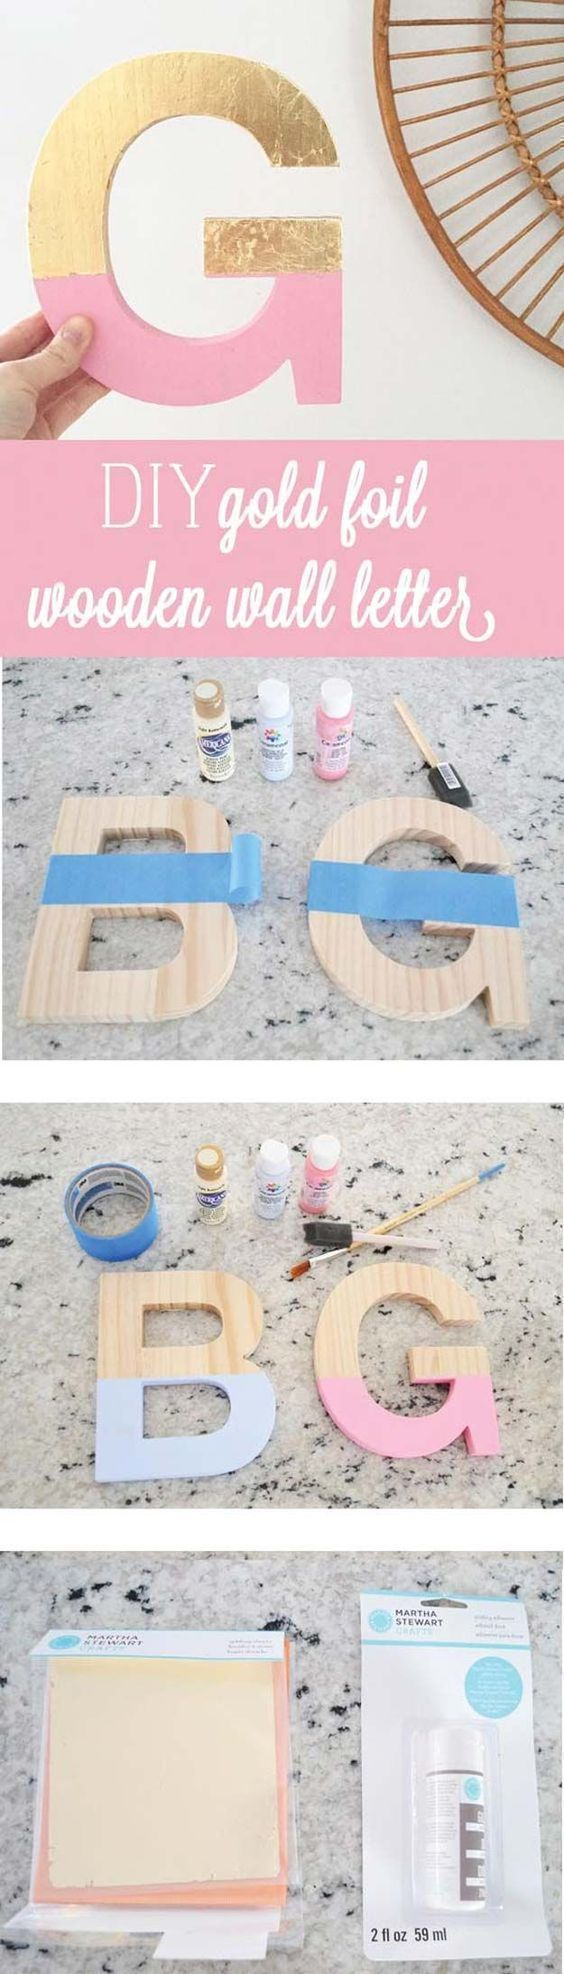 Best 25  Easy crafts for teens ideas on Pinterest | Diy for teens ... for Wall Art Ideas For Teenagers  289hul